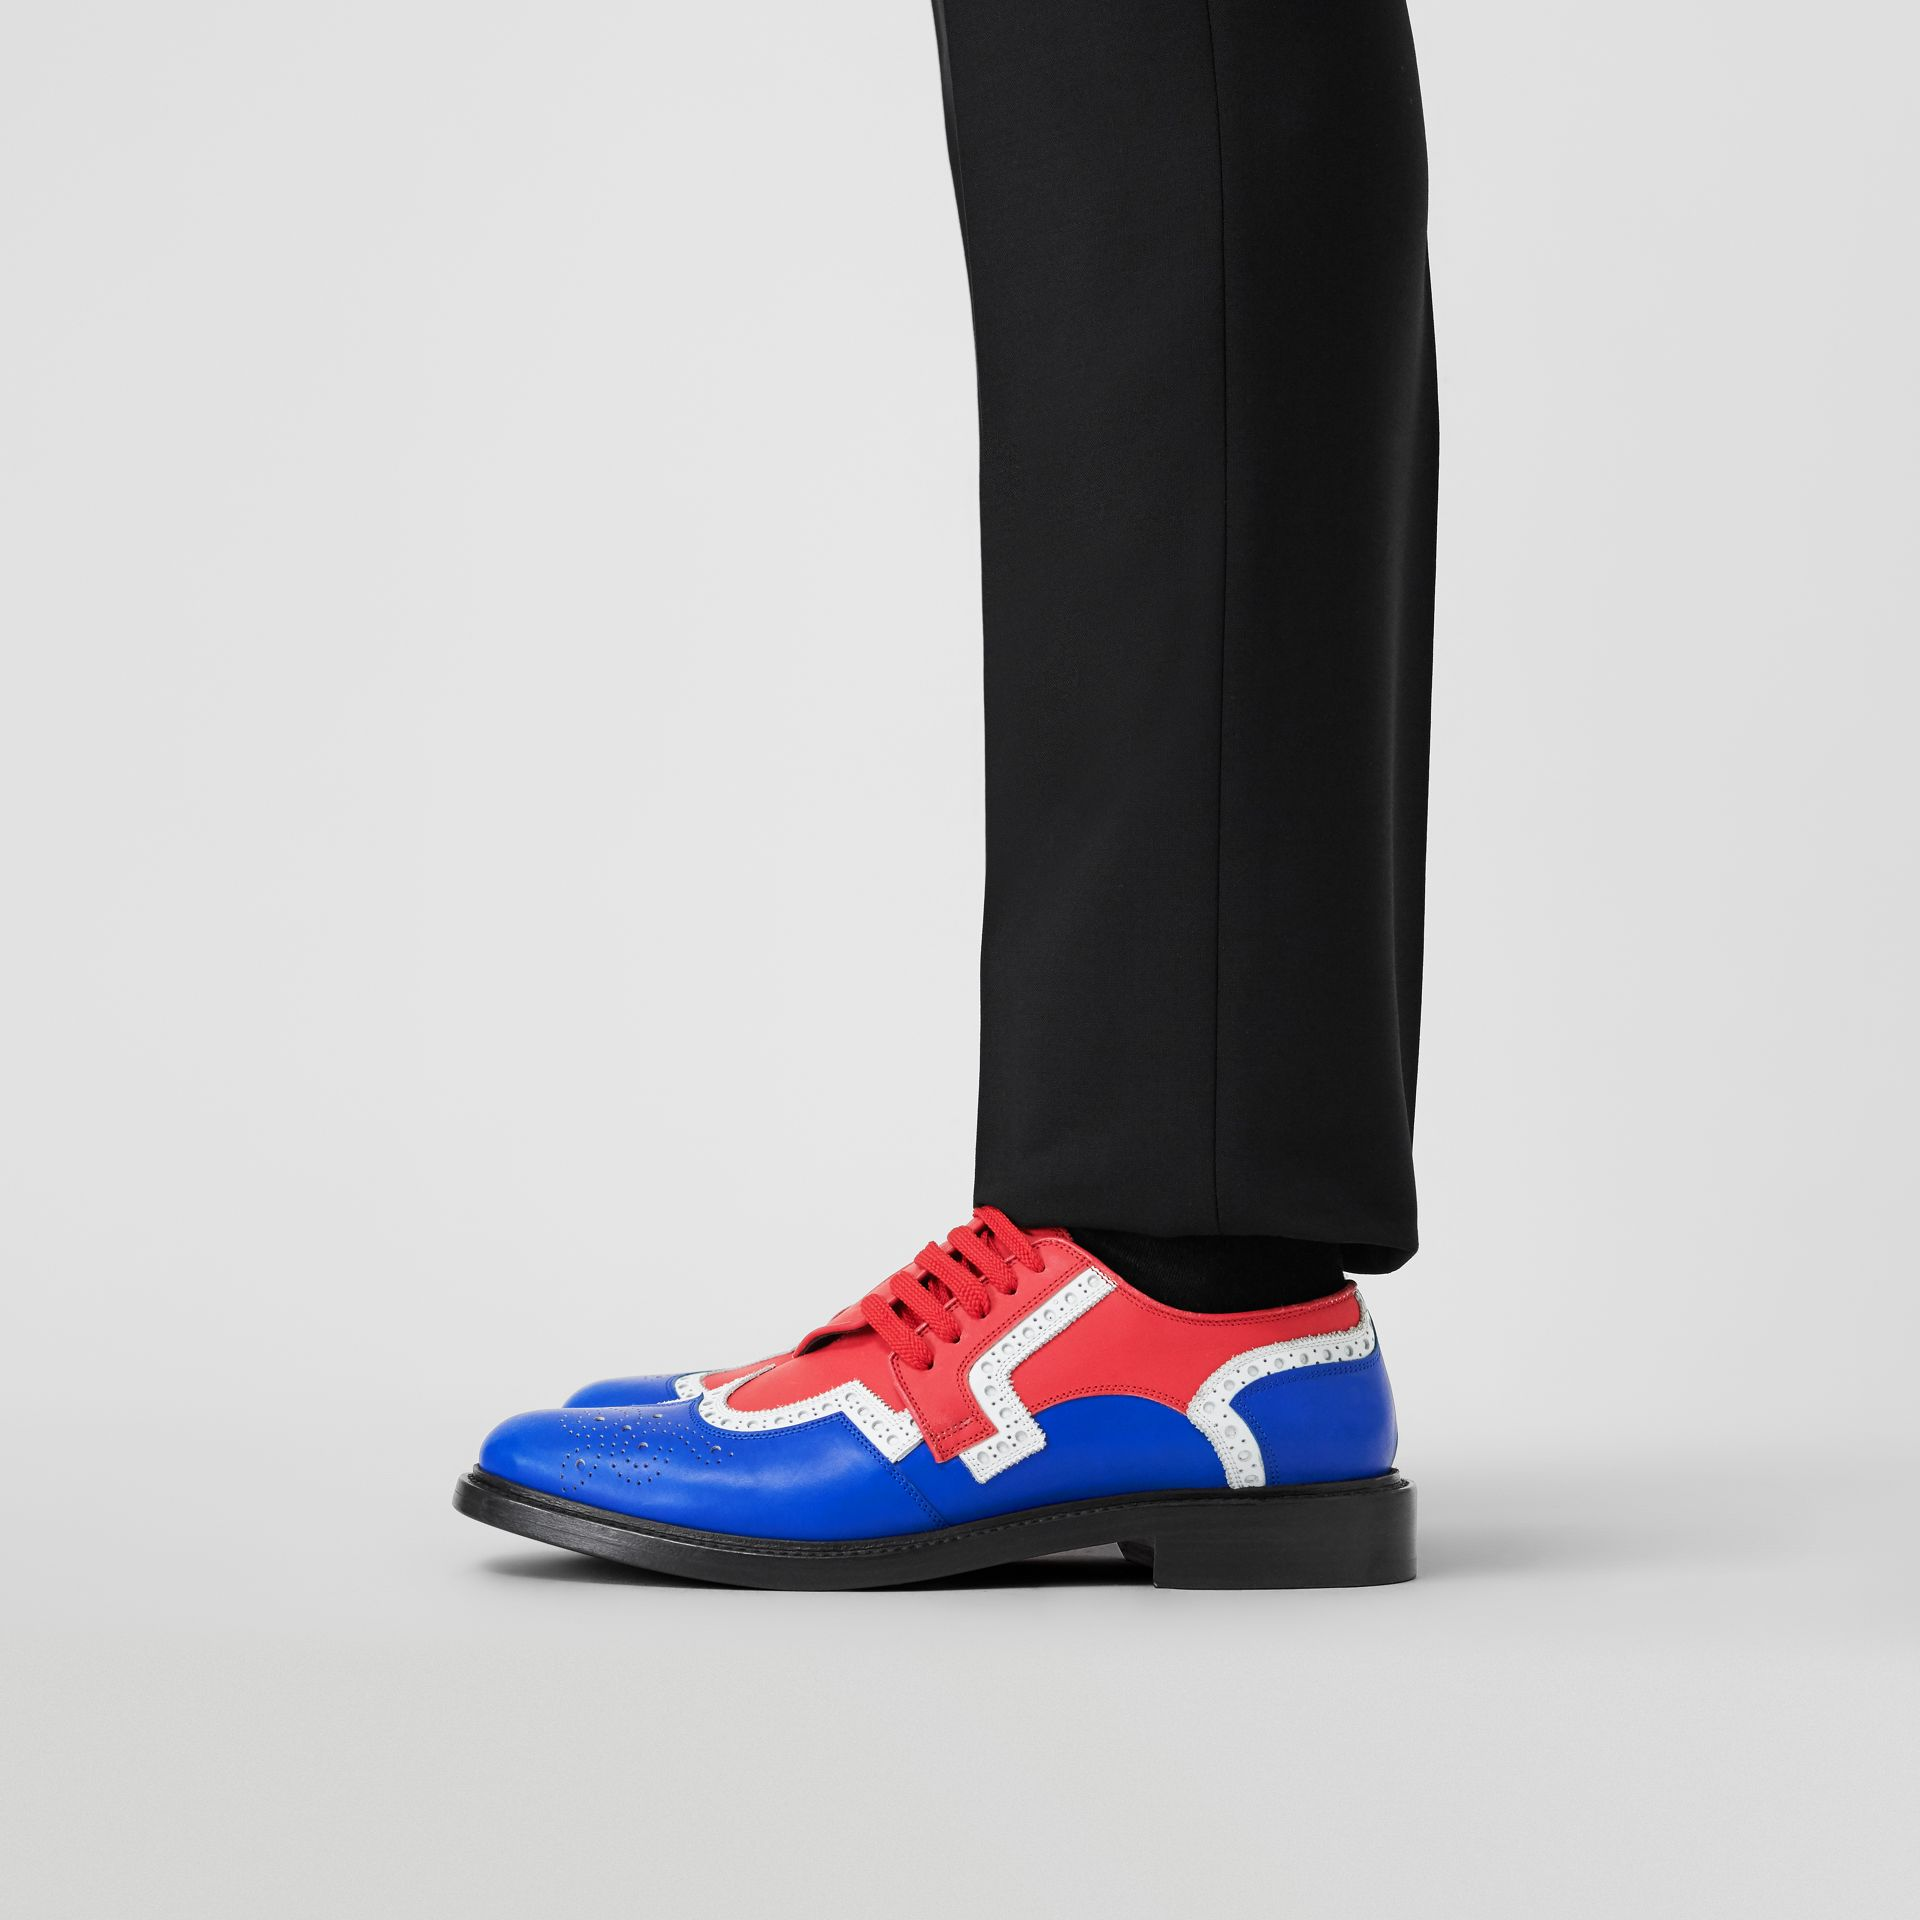 Asymmetric Closure Tri-tone Leather Brogues in Blue/red - Men | Burberry - gallery image 2